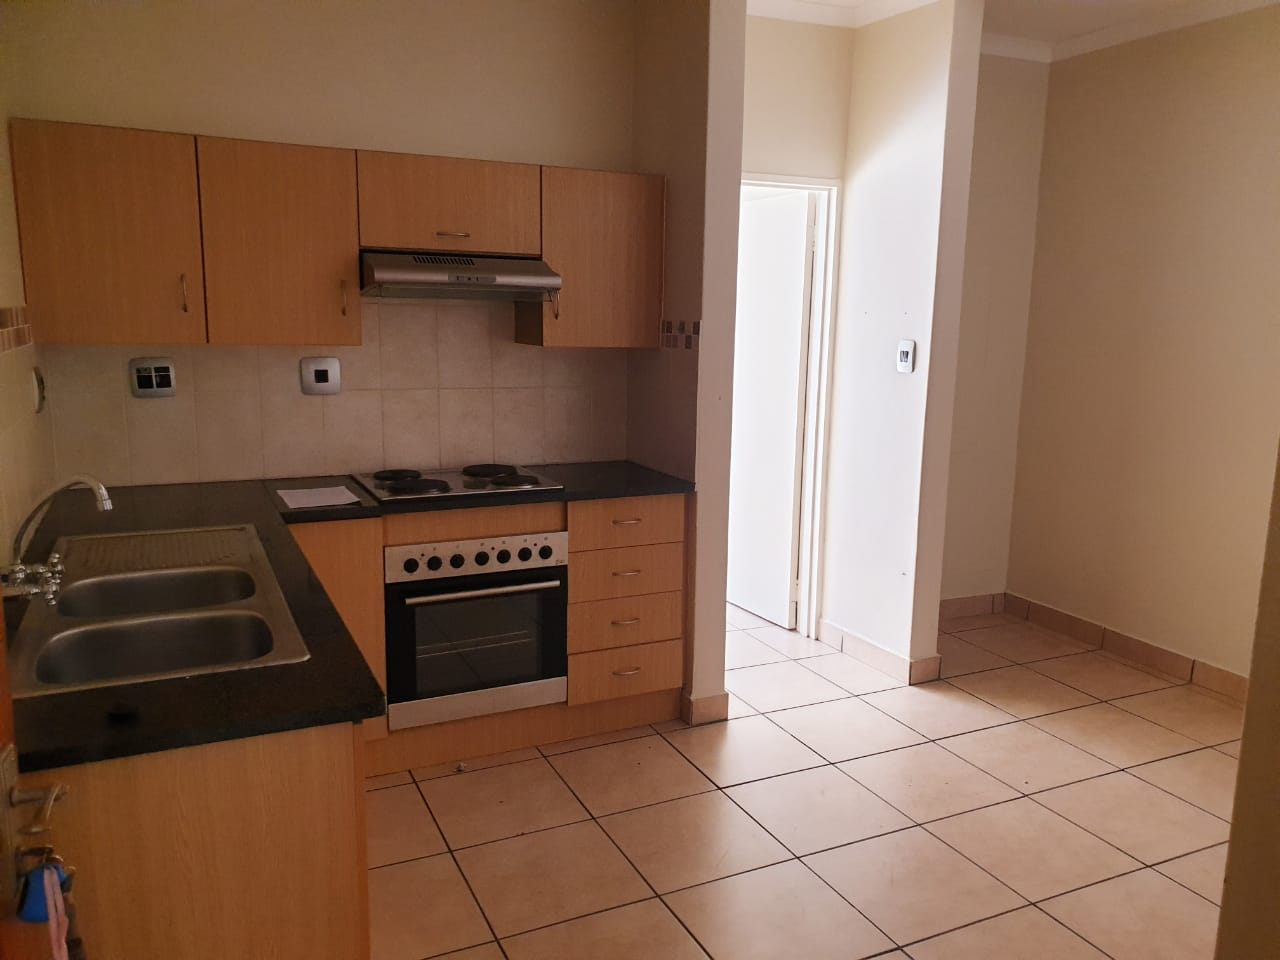 Apartment in Bult - WhatsApp Image 2021-08-25 at 15.48.22 (2).jpeg